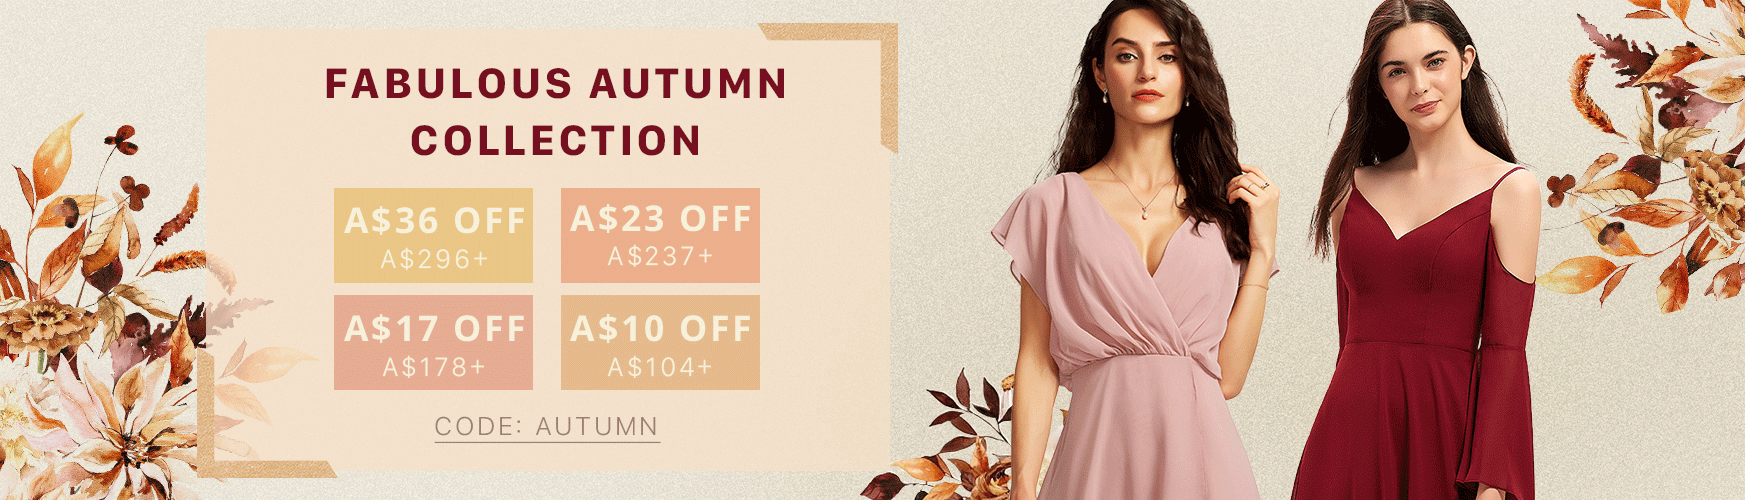 FABULOUS AUTUMN COLLECTION